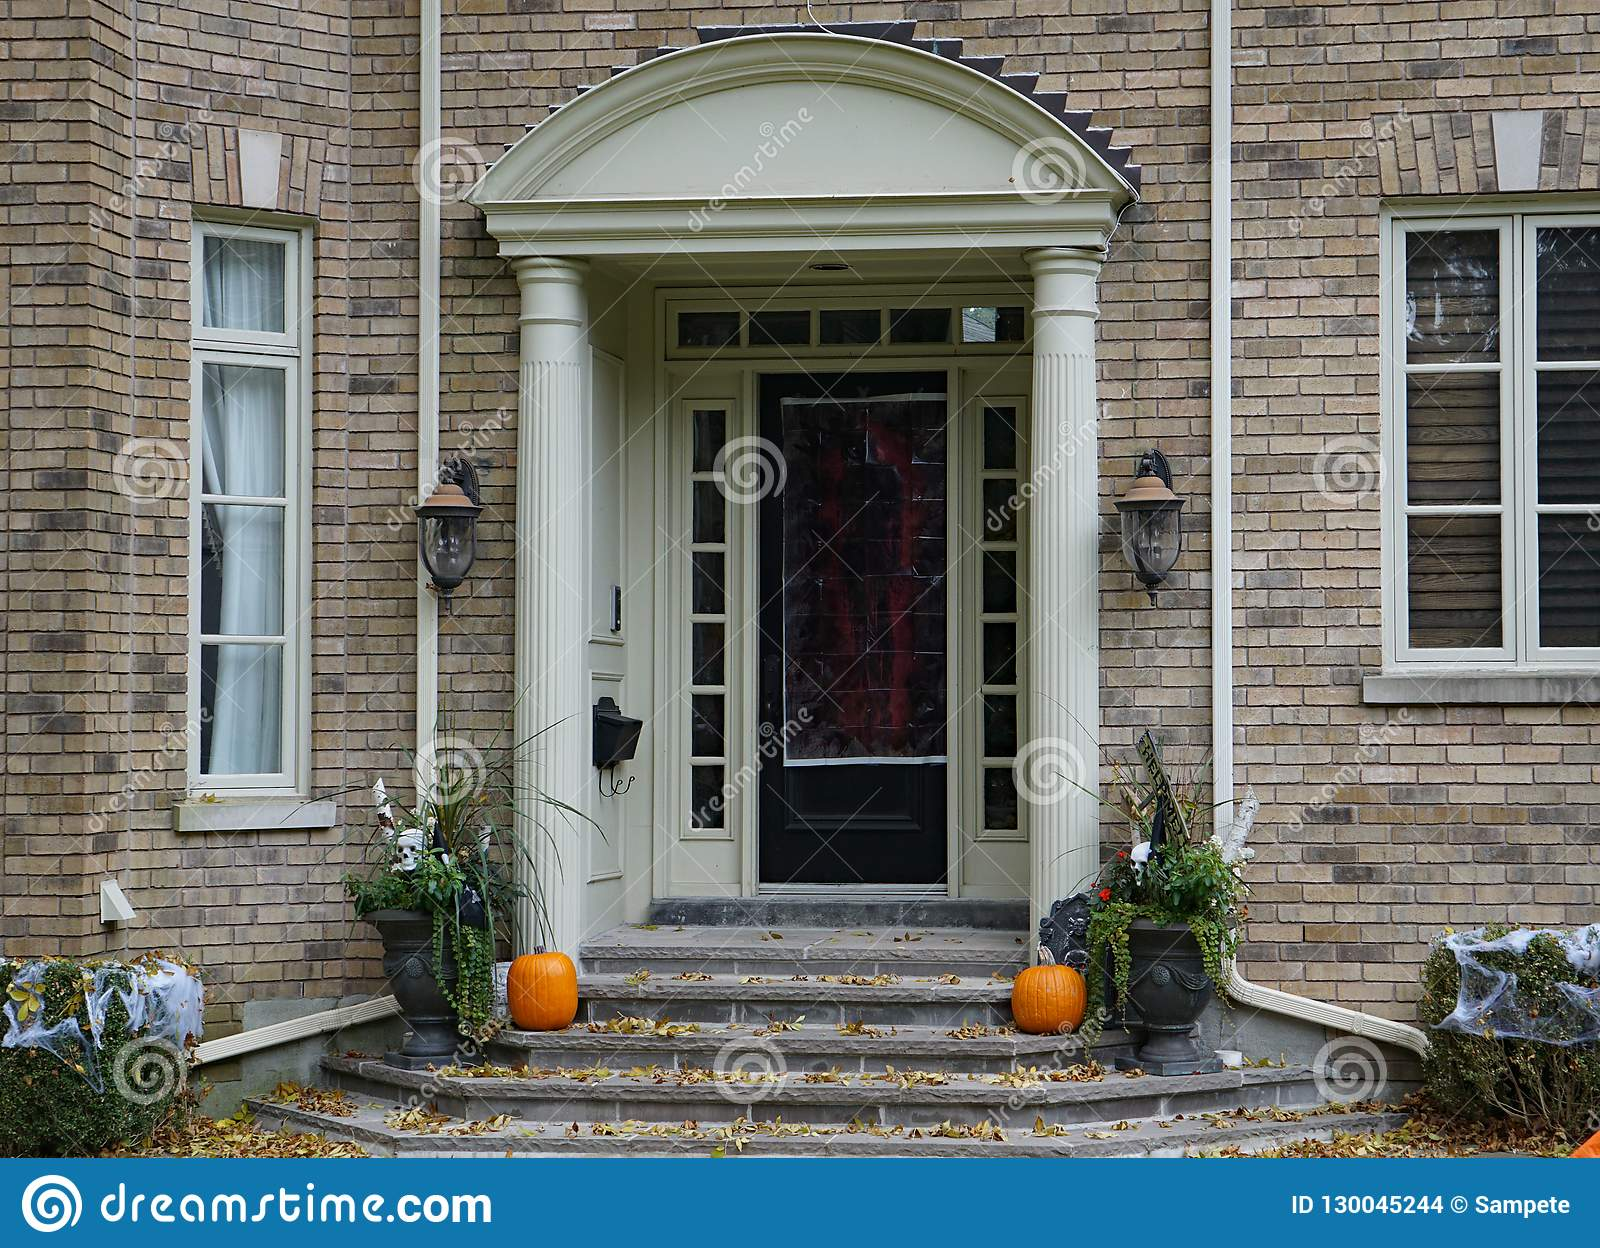 Halloween Decorations On Front Steps Stock Photo Image Of Pumpkin